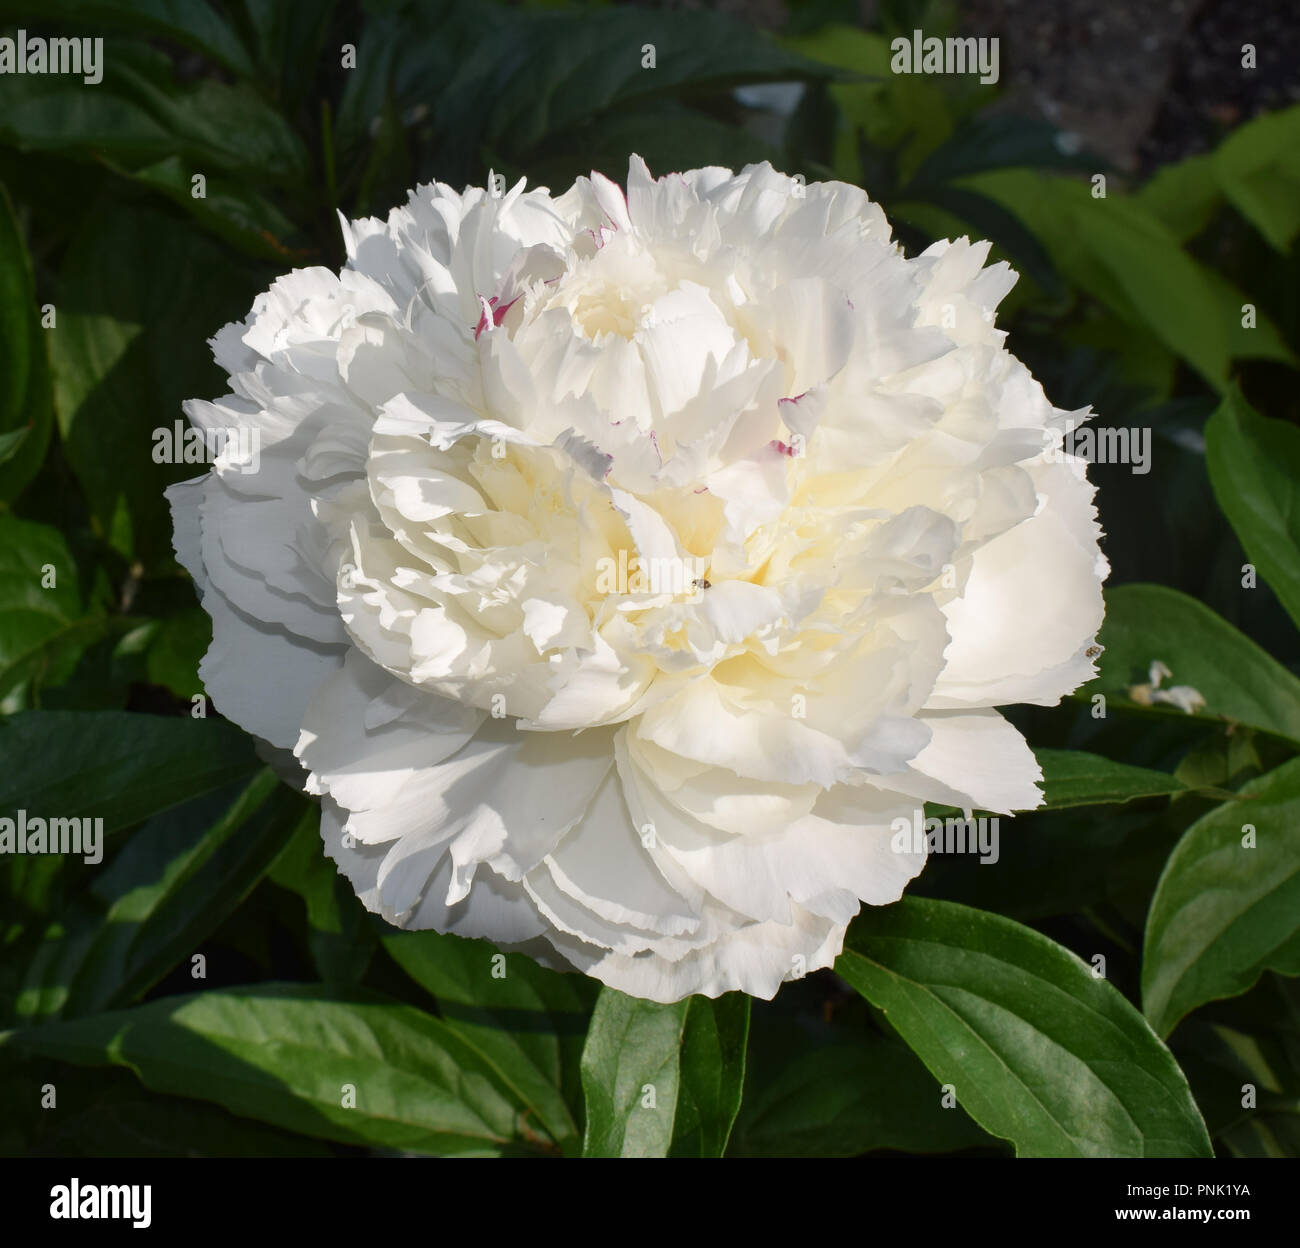 Close-up of a white peony with a buttery yellow center and a single hoplia beetle floundering in its dense petals. - Stock Image